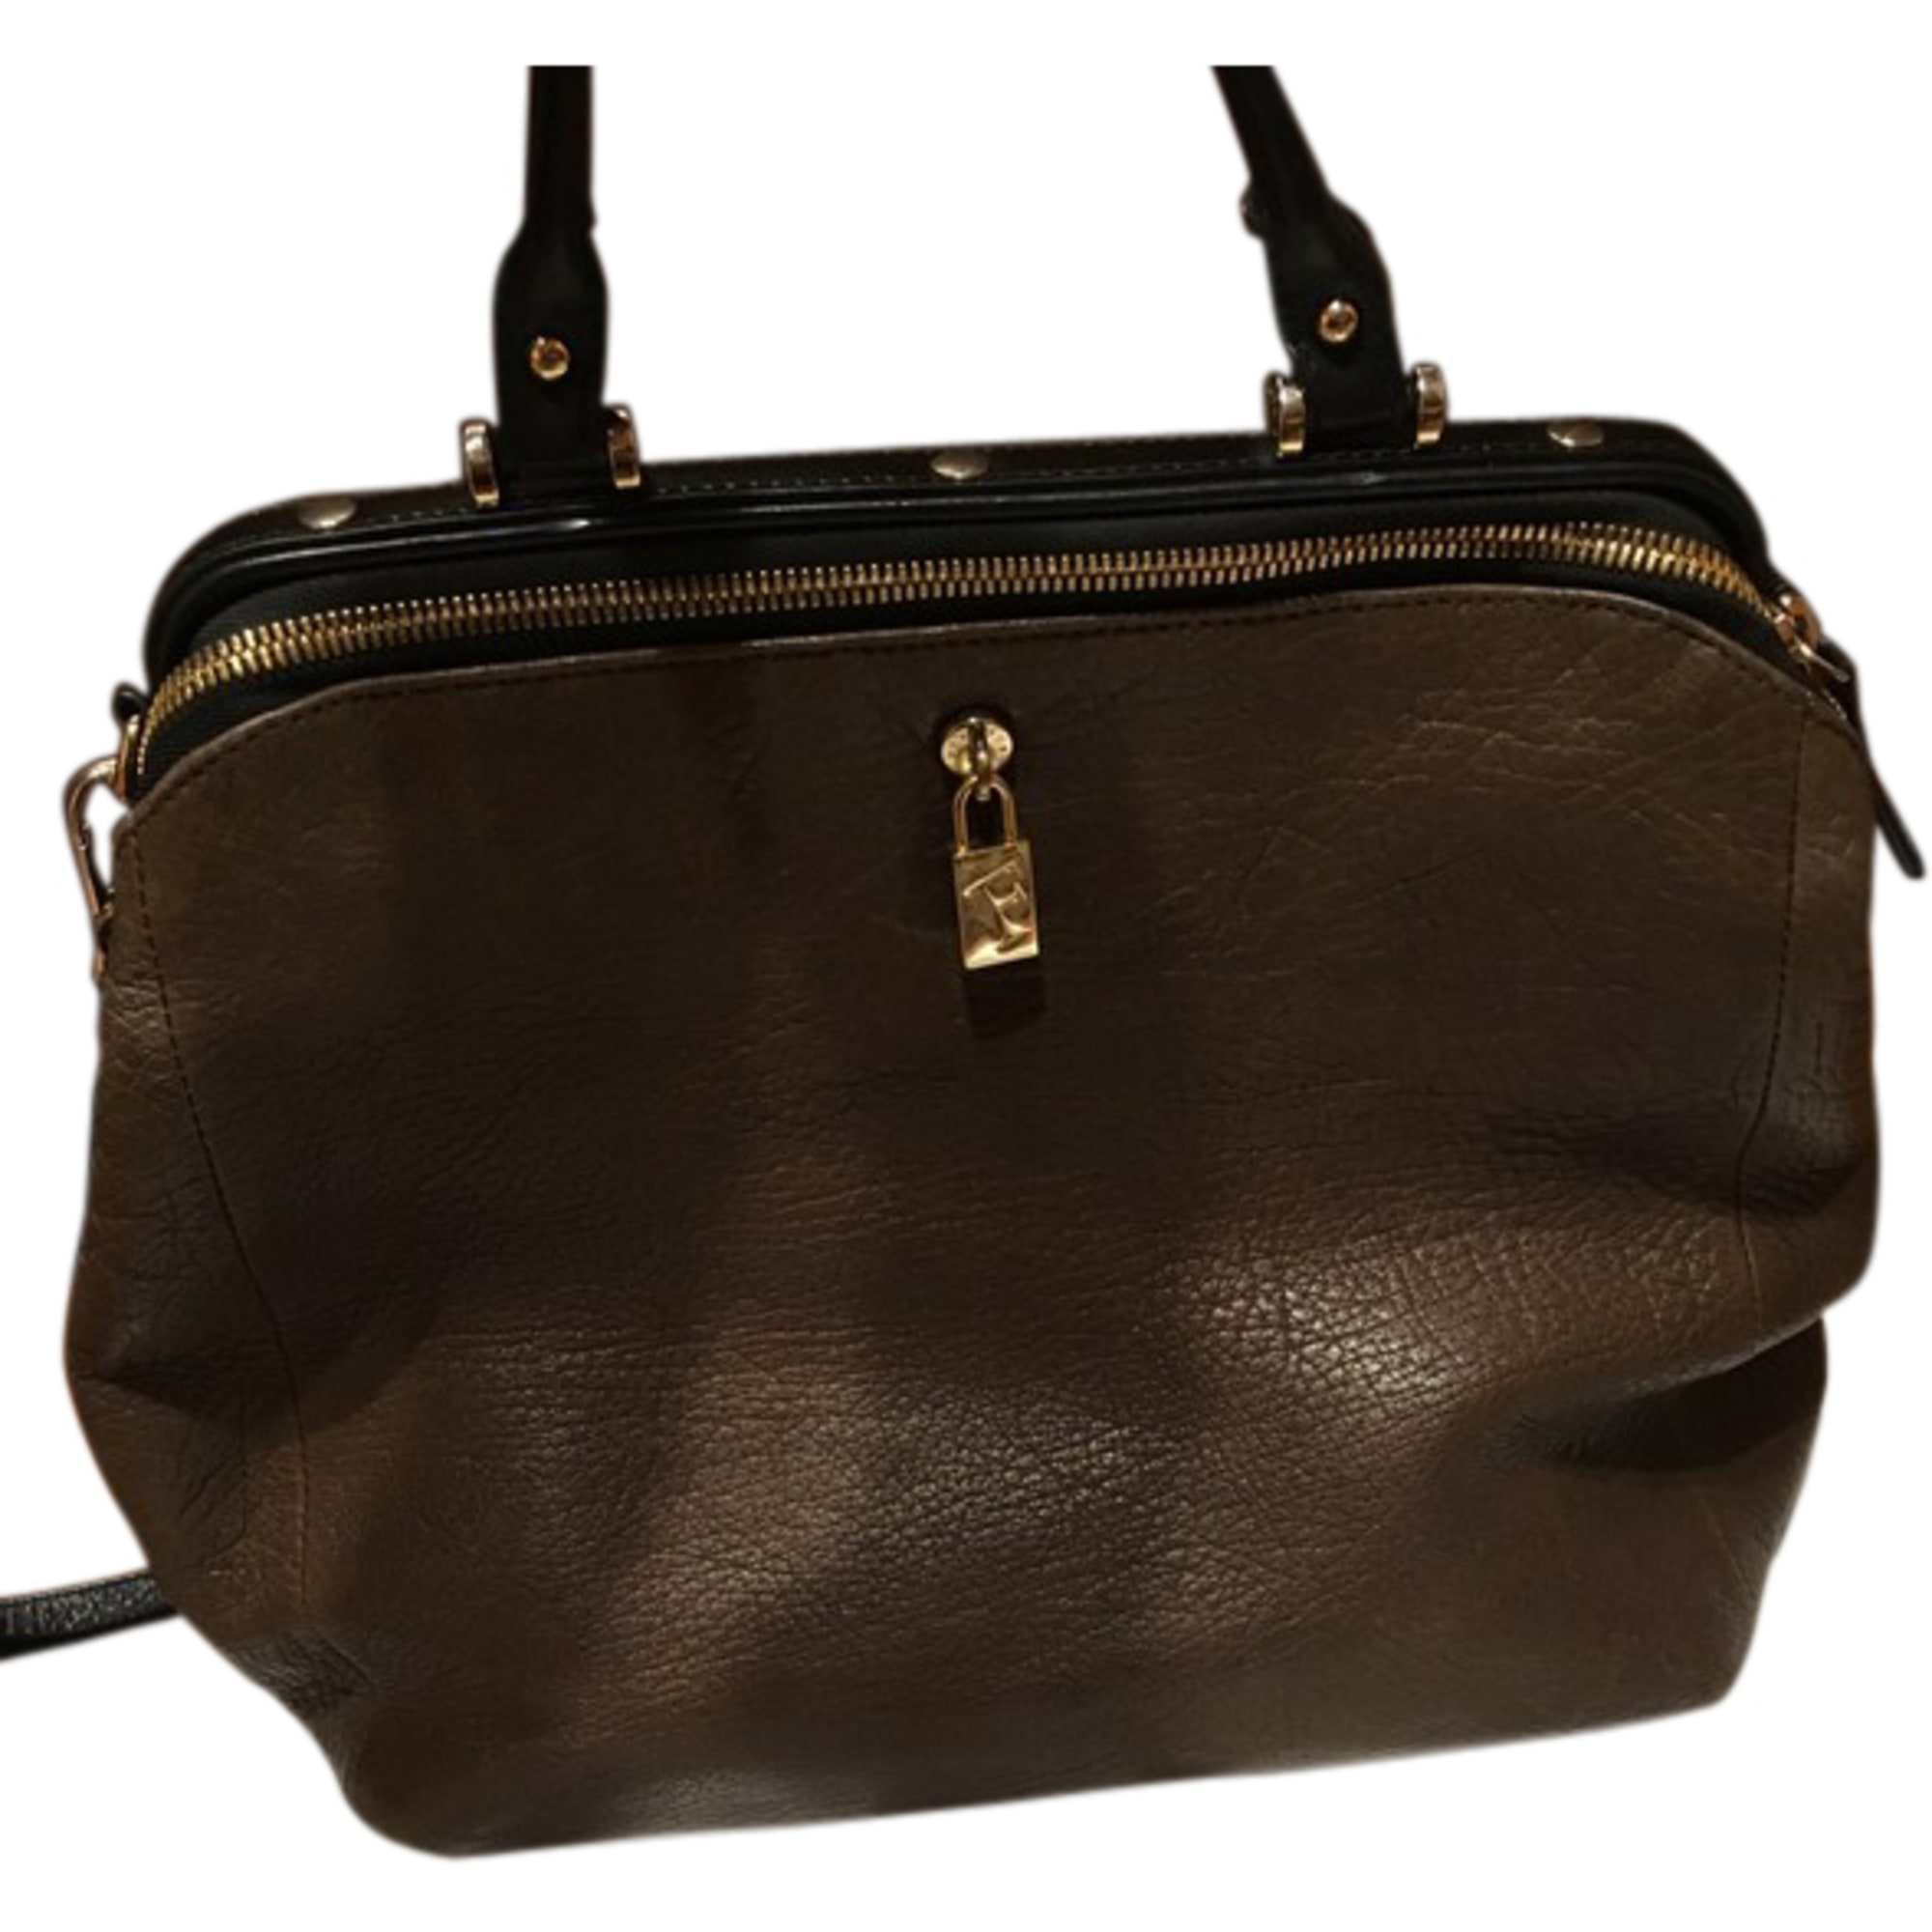 Borsetta in pelle FURLA Marrone